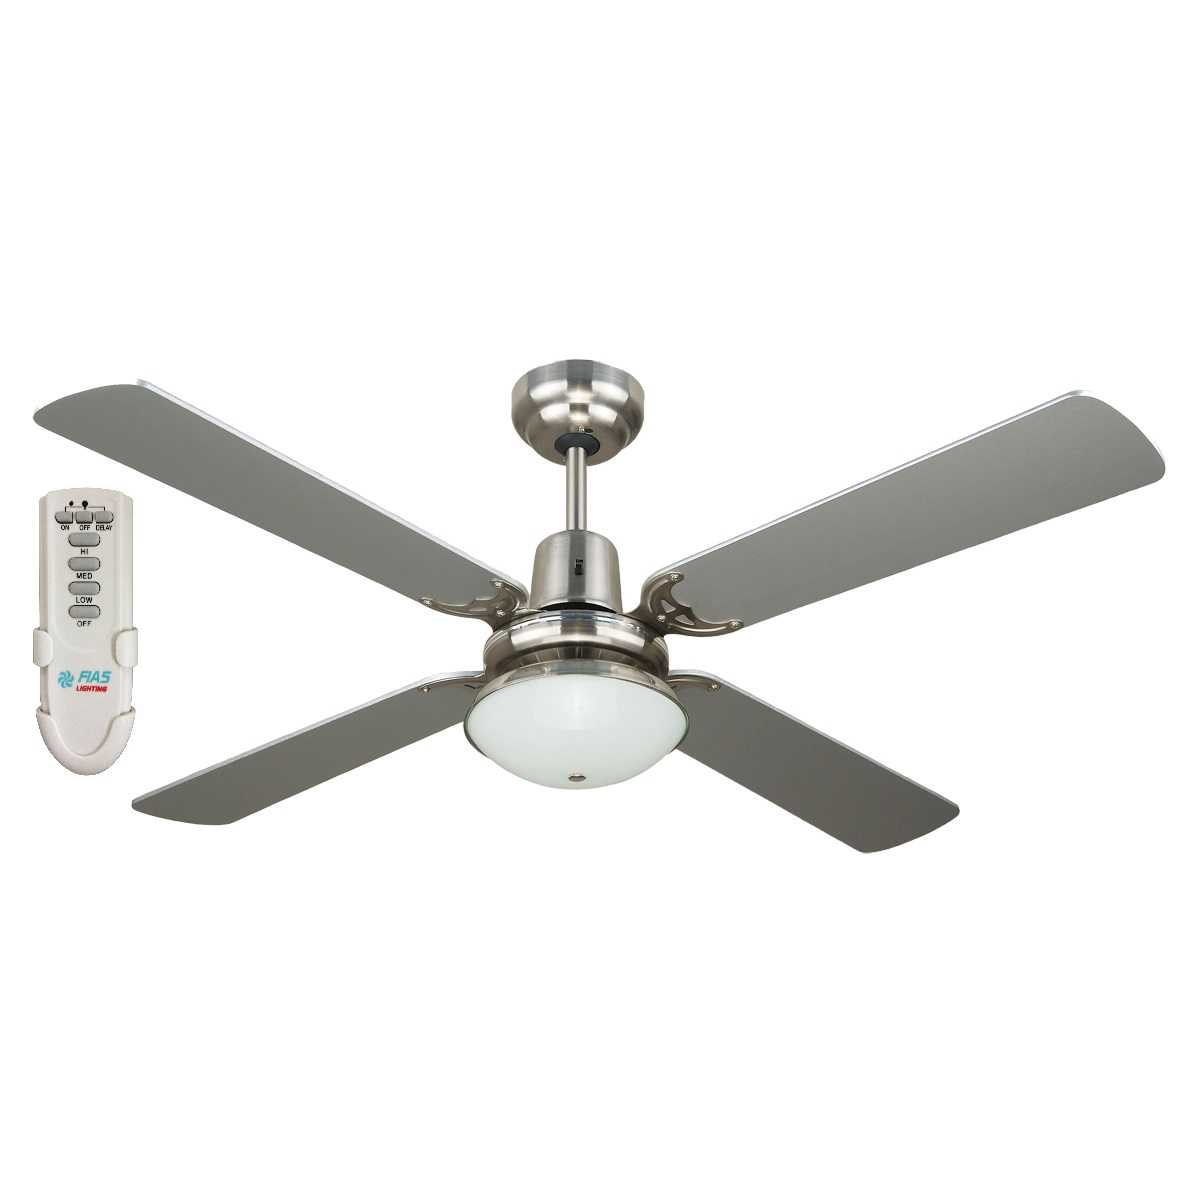 Fias Ramo 48 Inch Ceiling Fan With Light And Remote Control Silver Fias Lighting